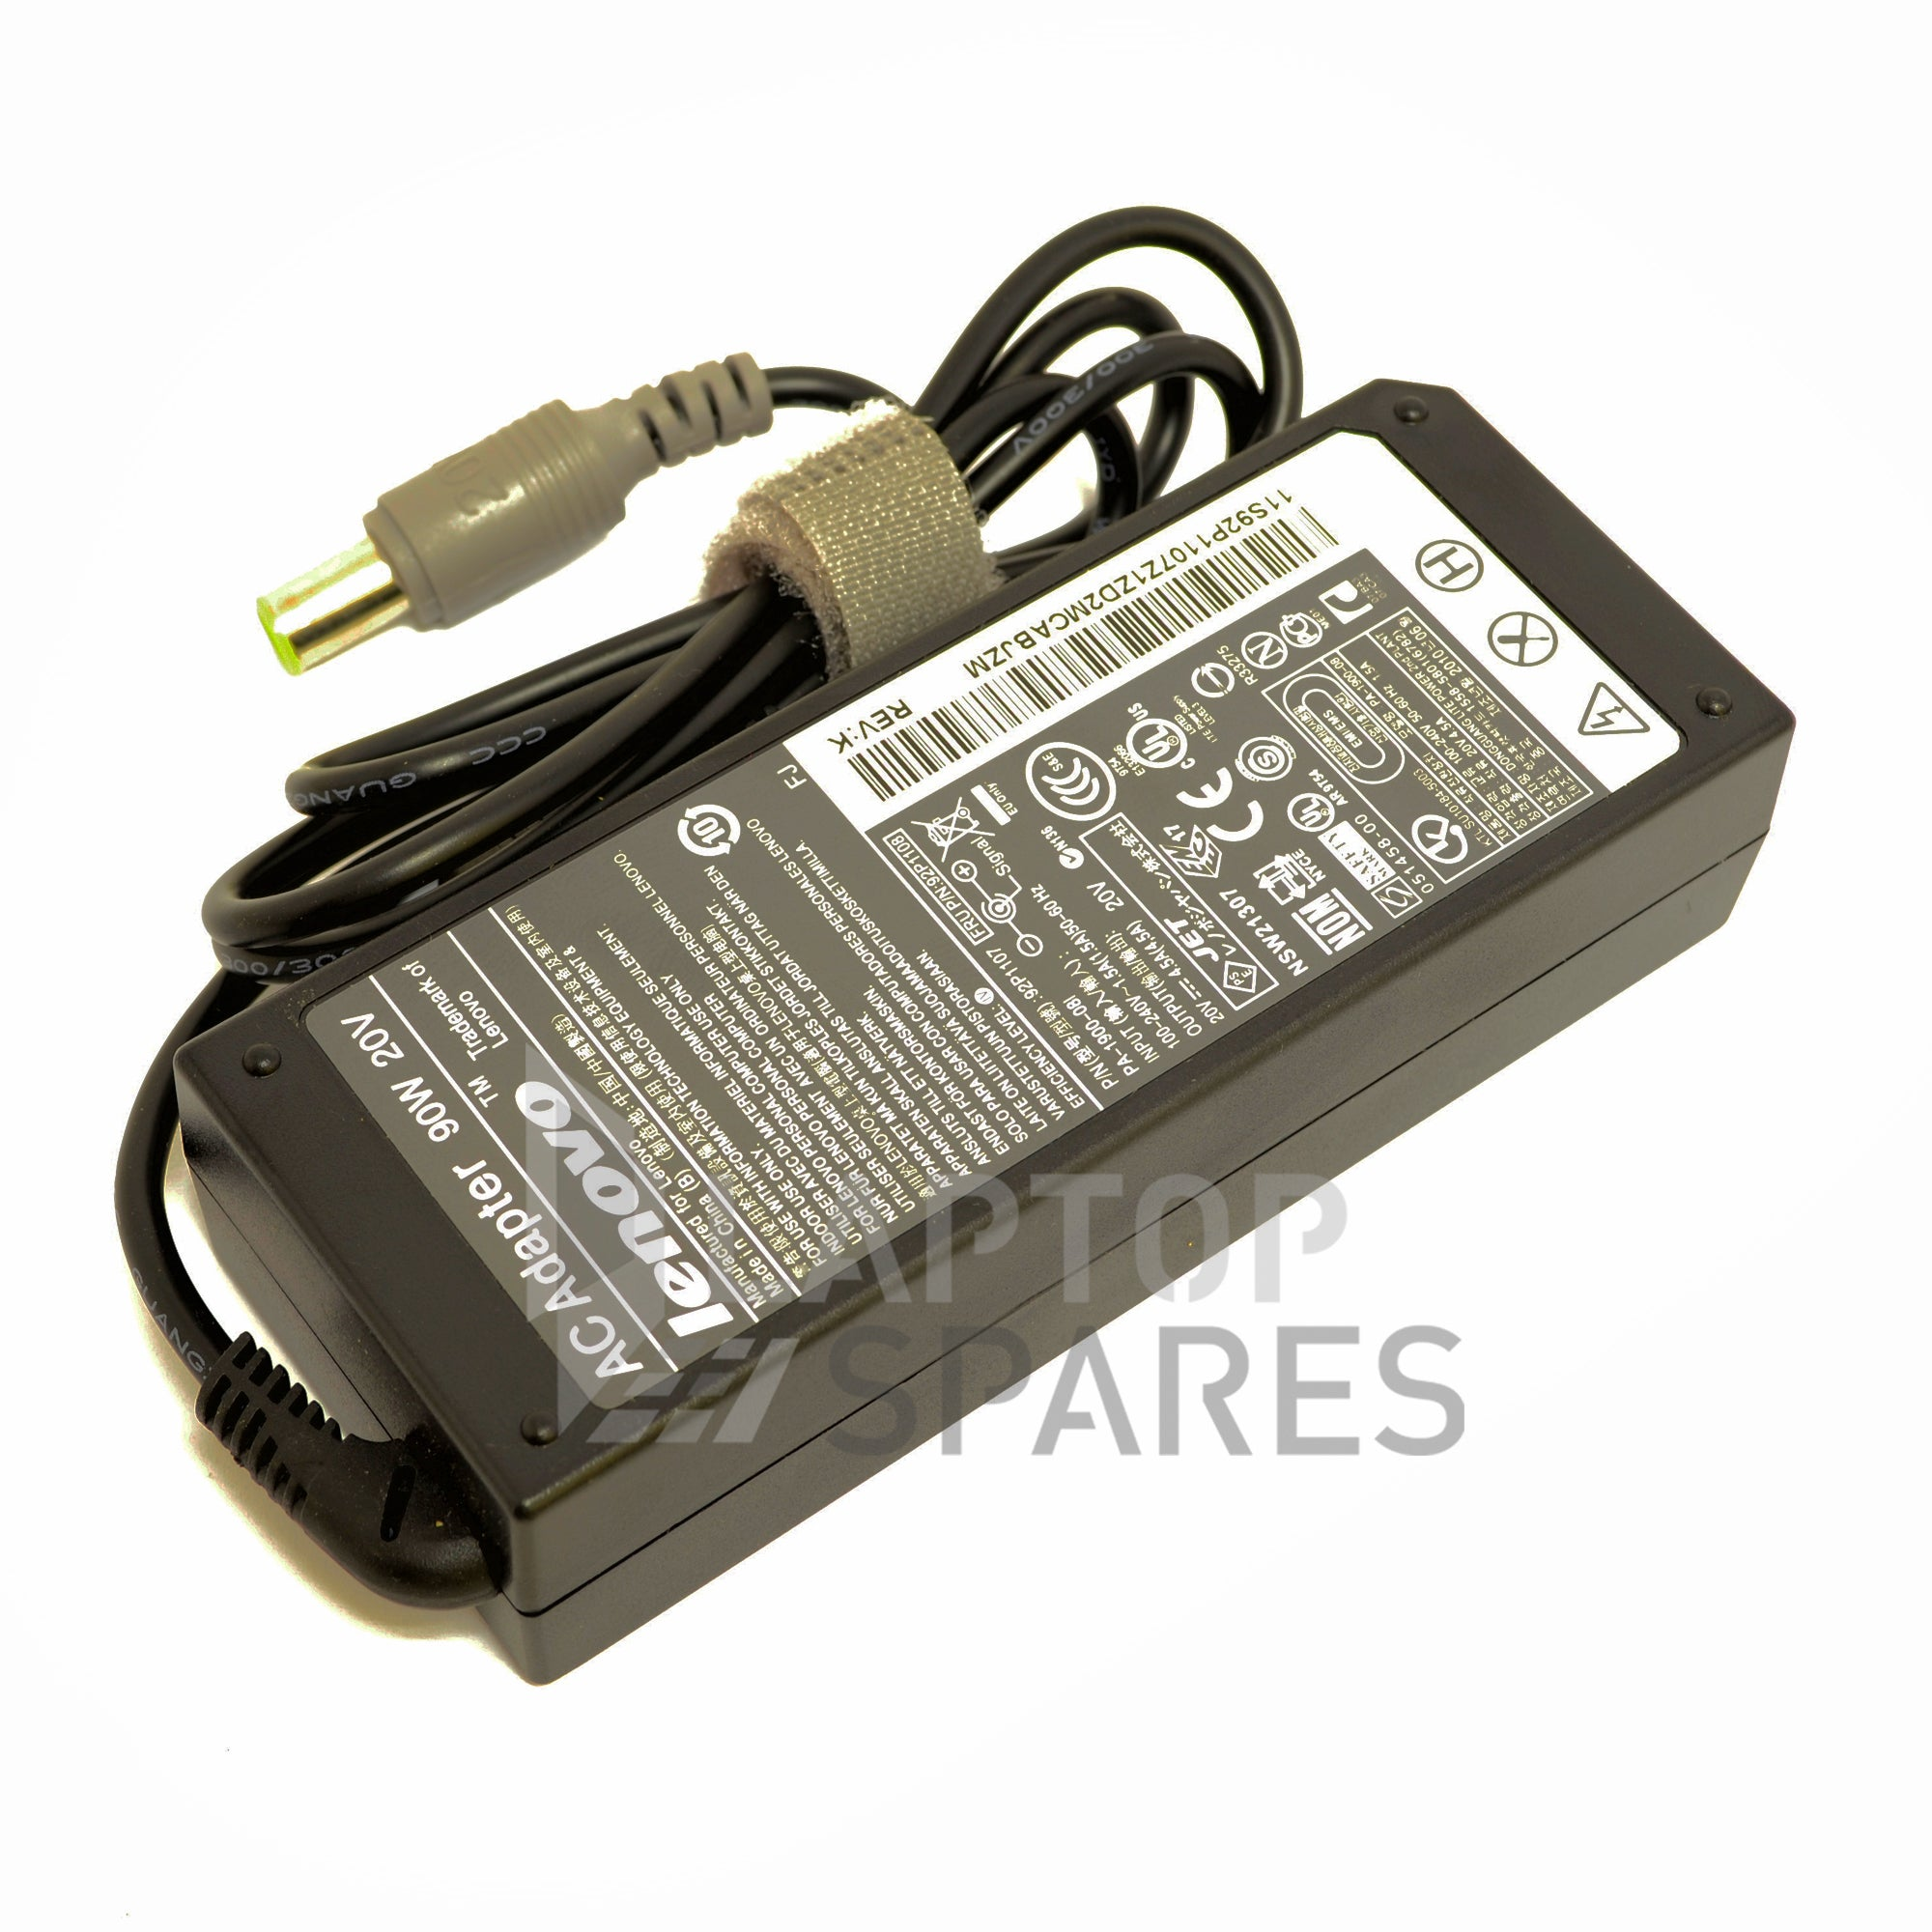 Lenovo ThinkPad R400 7443 Laptop AC Adapter Charger